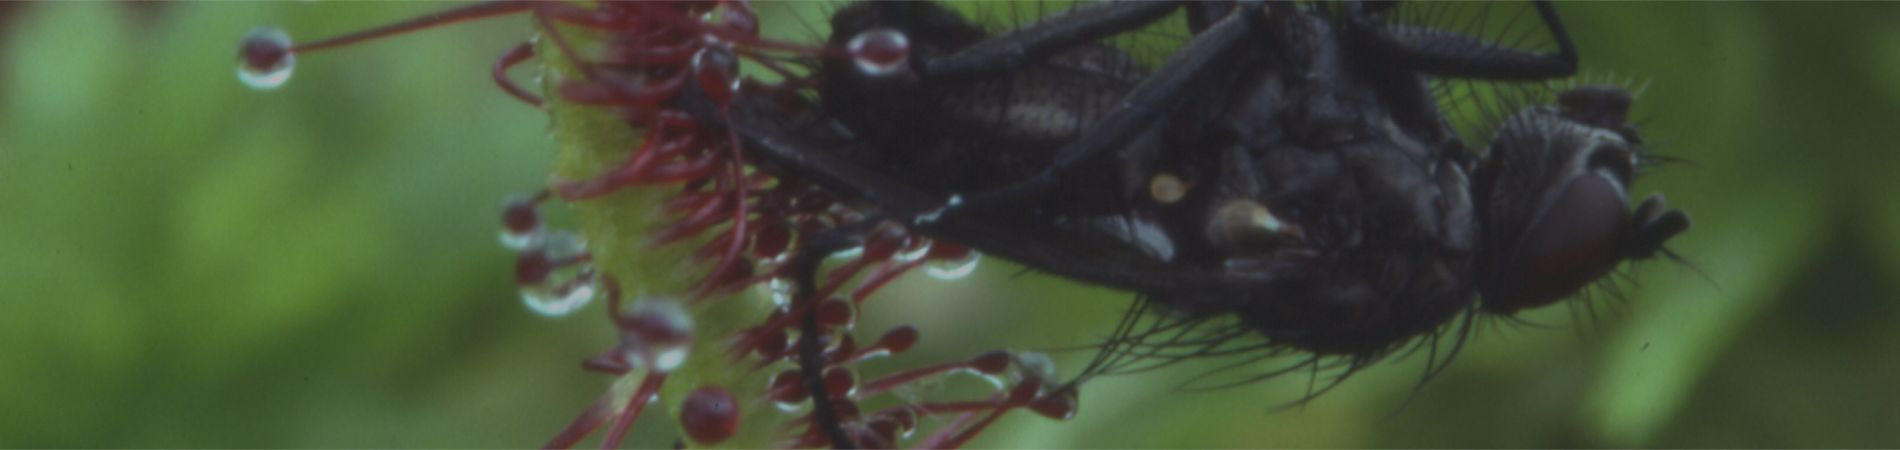 The image shows a fly trapped by glandular hairs on a leaf of Cape Sundew. The fly is approximately 1 cm long.